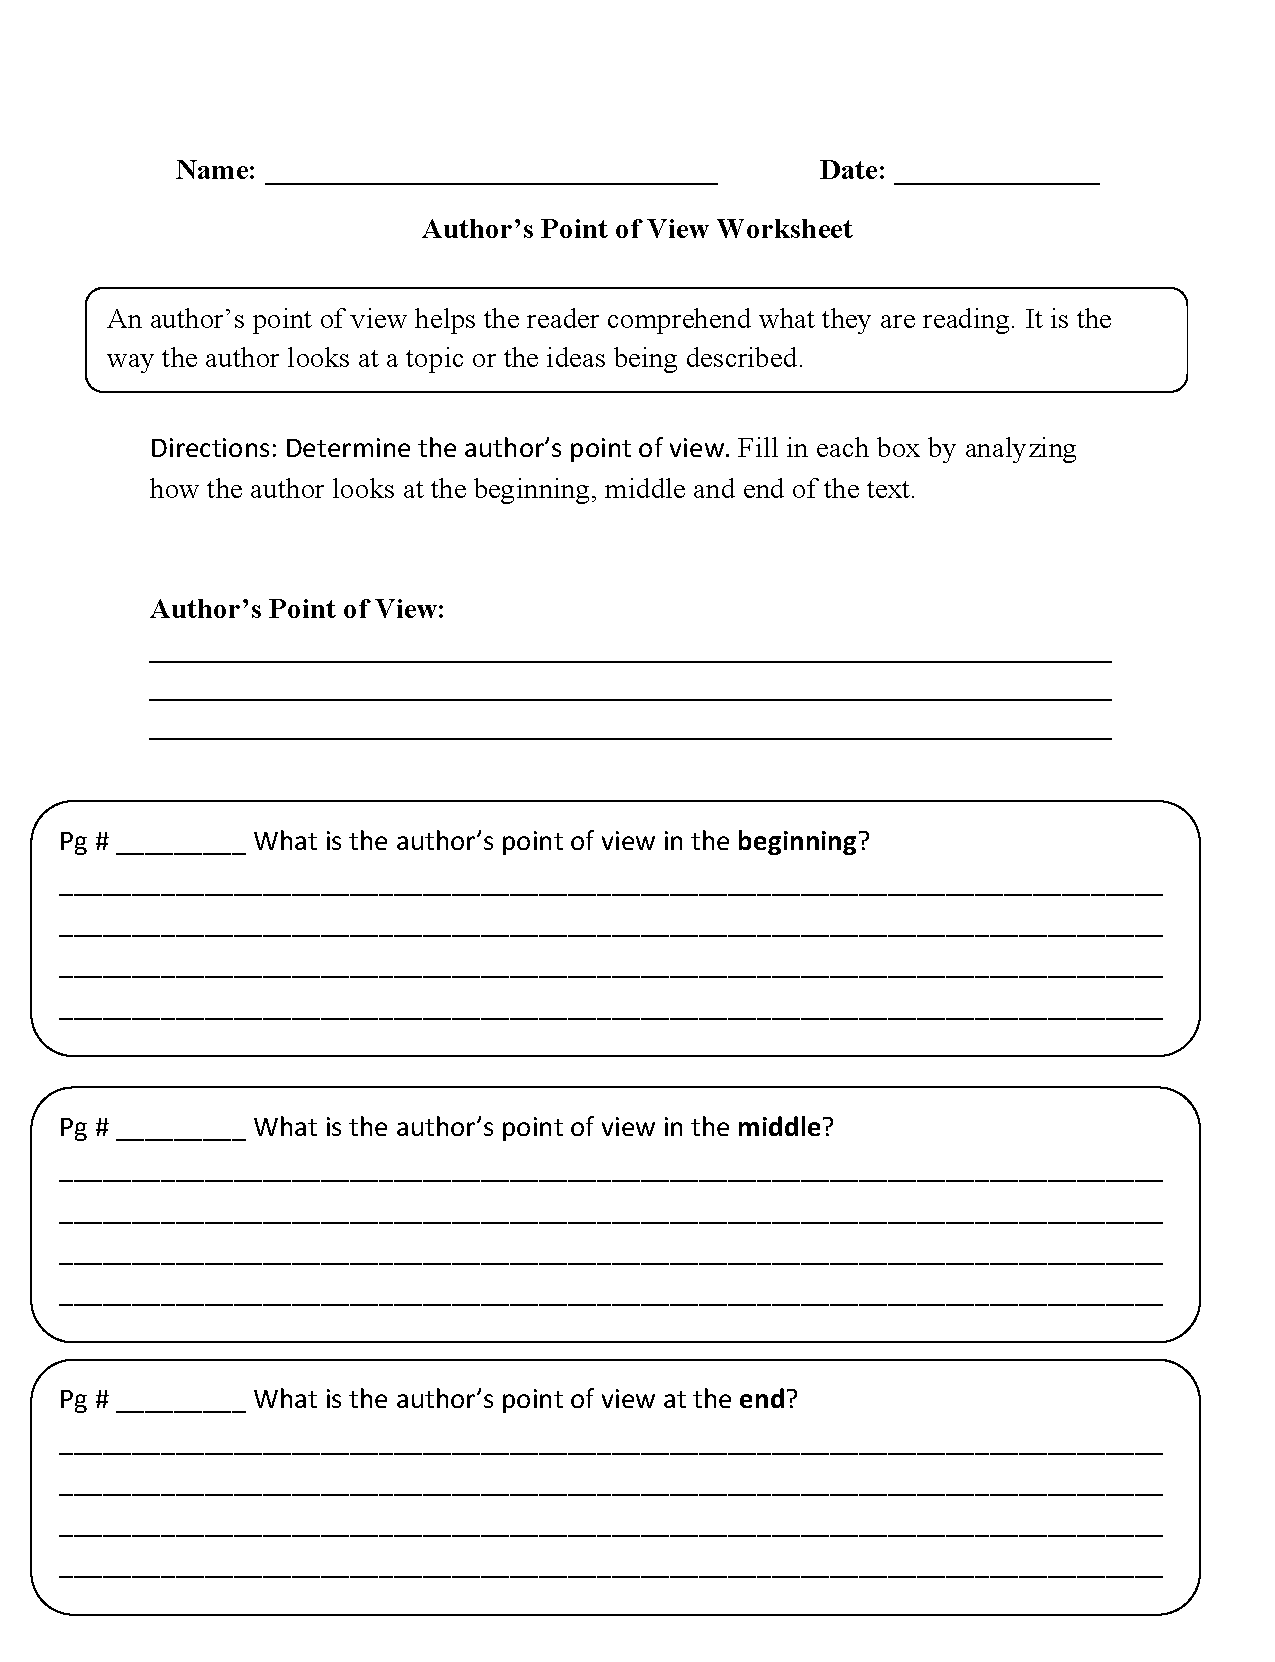 Weirdmailus  Wonderful Englishlinxcom  Point Of View Worksheets With Licious Point Of View Worksheets With Endearing Reading Reflex Worksheets Also Dilations Worksheet Th Grade In Addition Times Tables Colouring Worksheets And Plant Worksheets For Nd Grade As Well As Probability Practice Worksheet Additionally Worksheets On Exponents For Th Grade From Englishlinxcom With Weirdmailus  Licious Englishlinxcom  Point Of View Worksheets With Endearing Point Of View Worksheets And Wonderful Reading Reflex Worksheets Also Dilations Worksheet Th Grade In Addition Times Tables Colouring Worksheets From Englishlinxcom